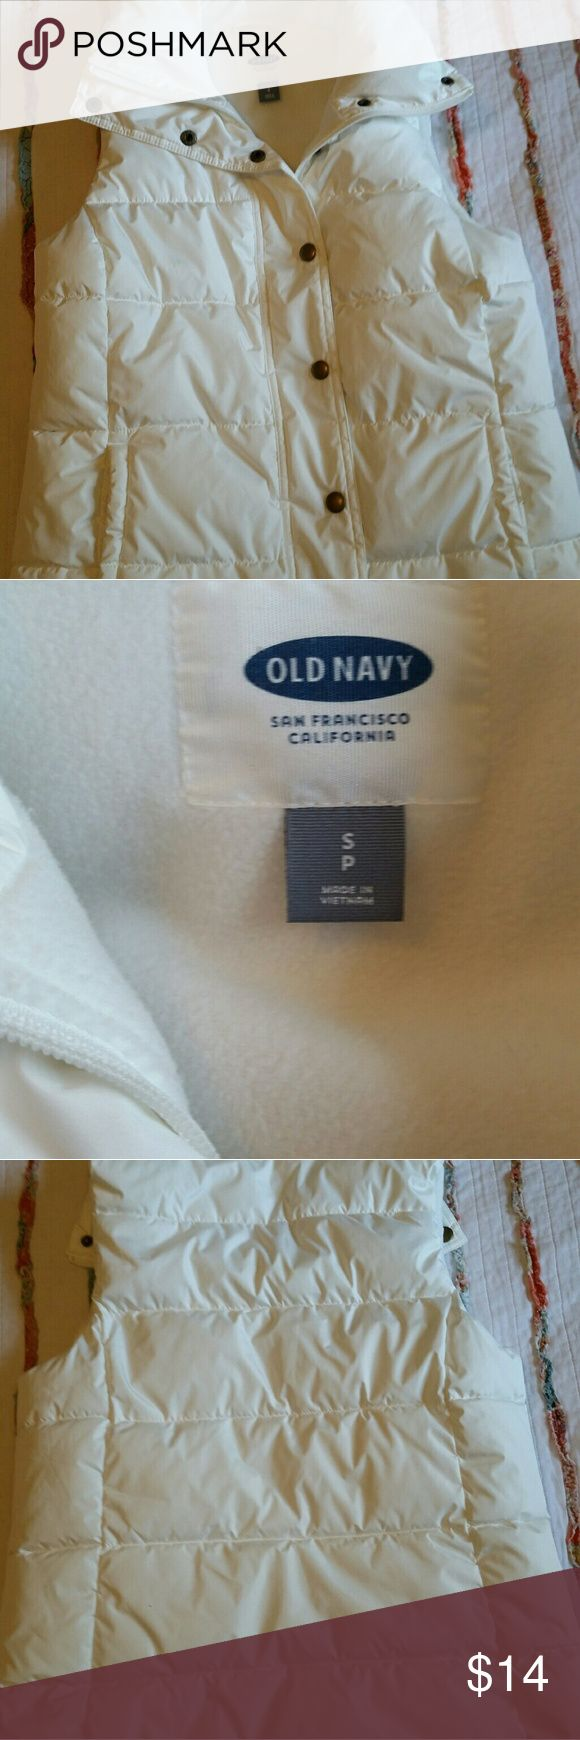 """Old Navy Fleece Lined Puffy Vest White Old Navy Fleece Lined Puffy Vest size SP, snap front with fleece lined pockets, cute, great condtion, barely wore few times - 23"""" long , 18"""" across chest Old Navy Jackets & Coats Vests"""